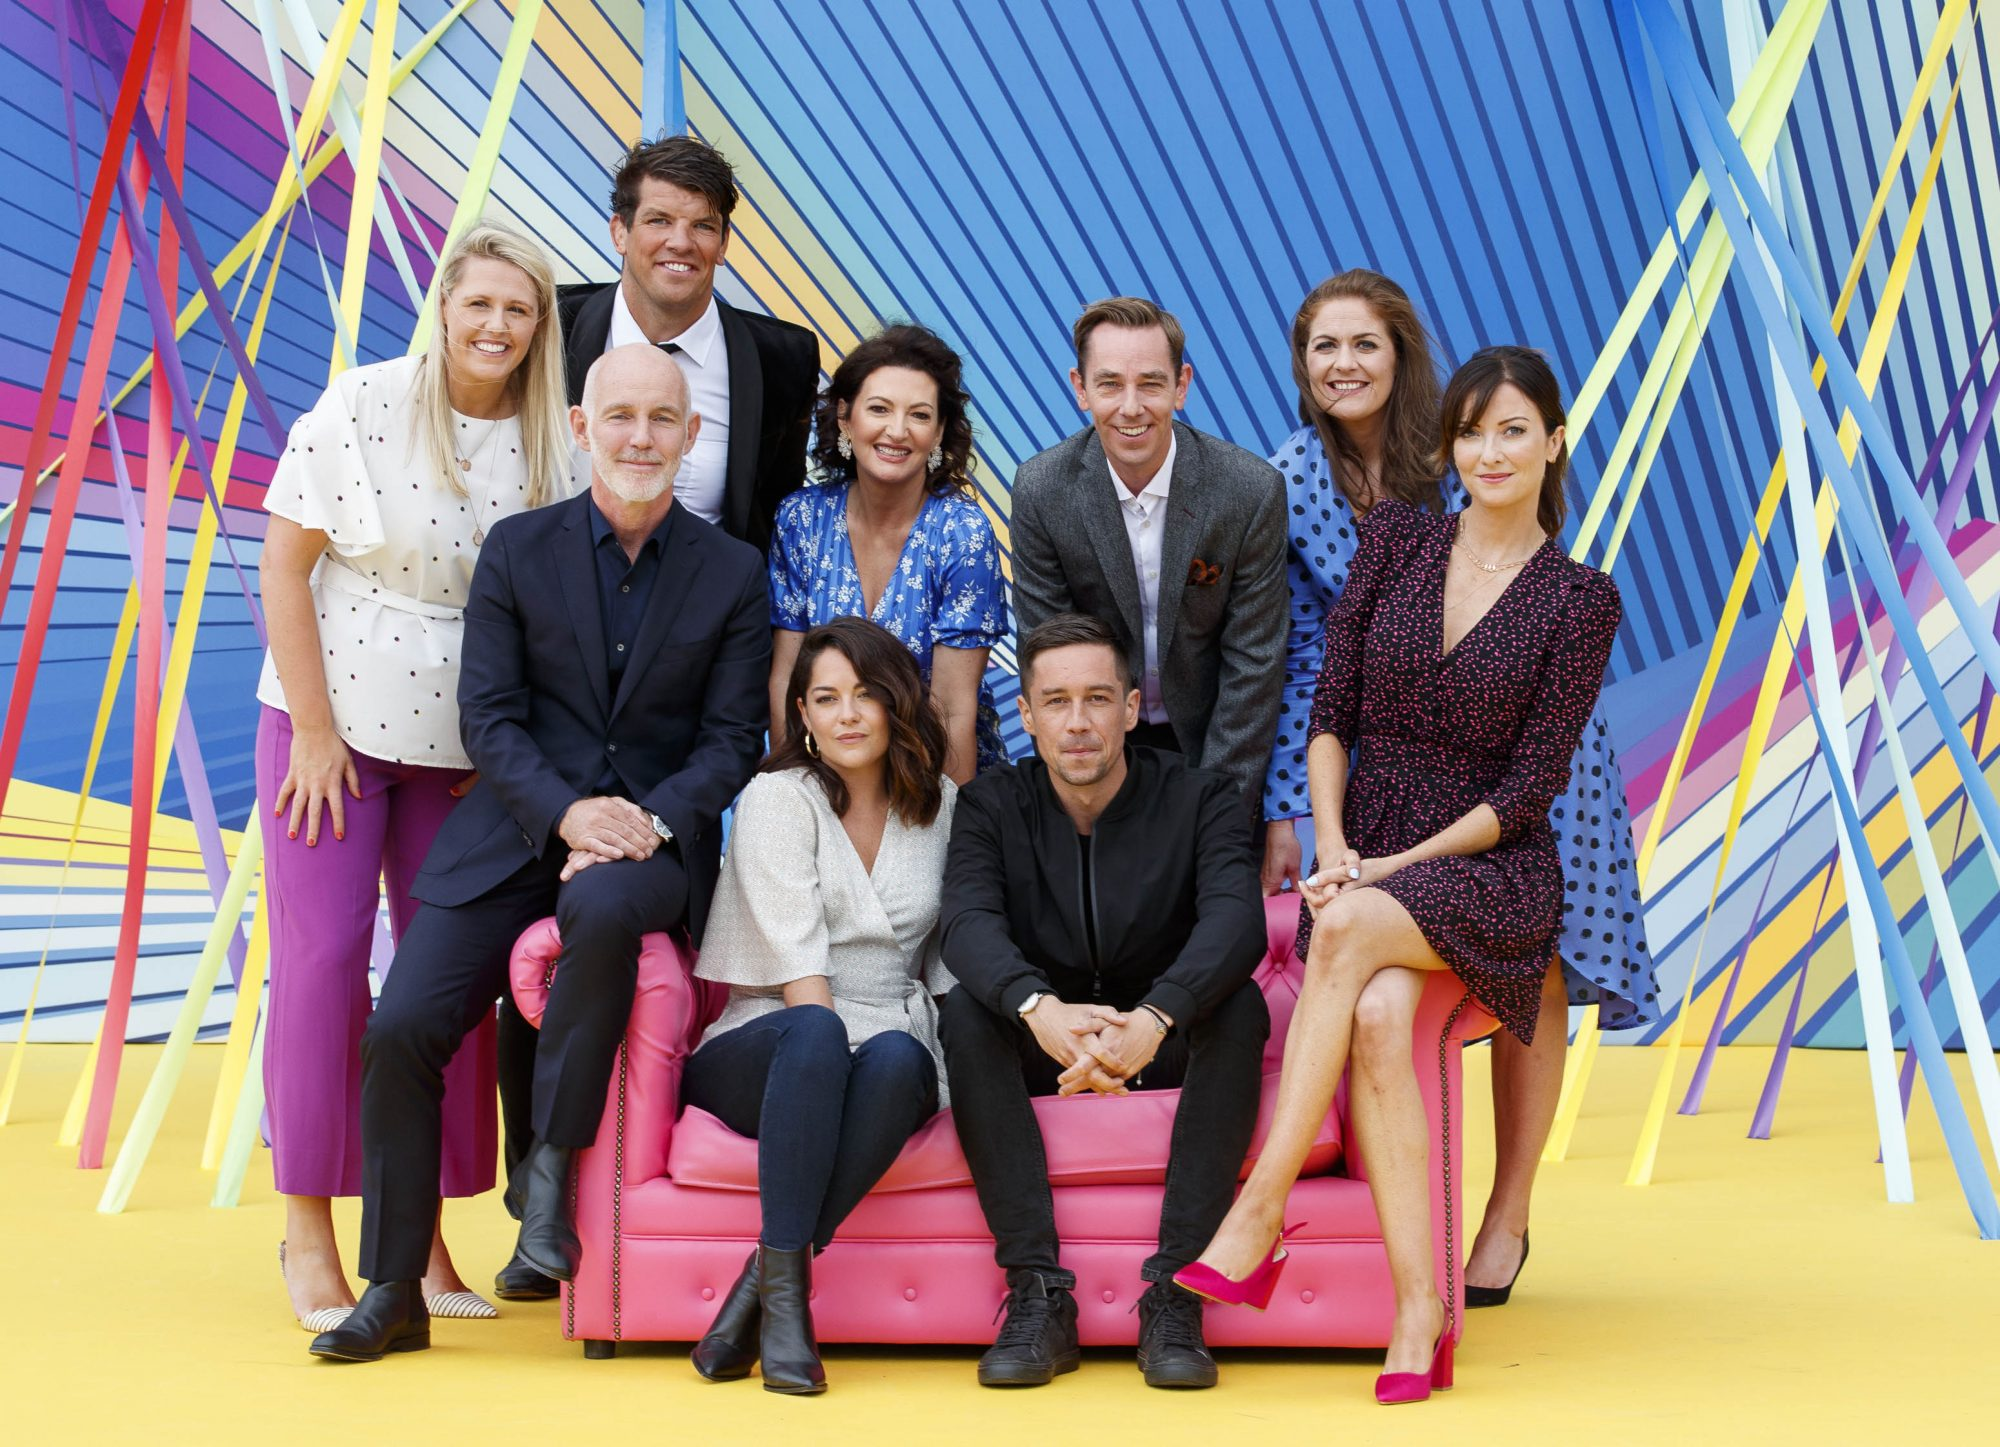 (back) Jacqui Hurley, Donncha O'Callaghan, Maura Derrane, Ryan Tubridy, Fiona Coughlan, (front) Ray D'Arcy, Sarah Greene, Killian Scott, and Jennifer Zamparelli pictured as RTÉ today announced a slate of new impactful Irish programming, star signings and a strong focus on climate as part of its upcoming new season. Picture: Andres Poveda